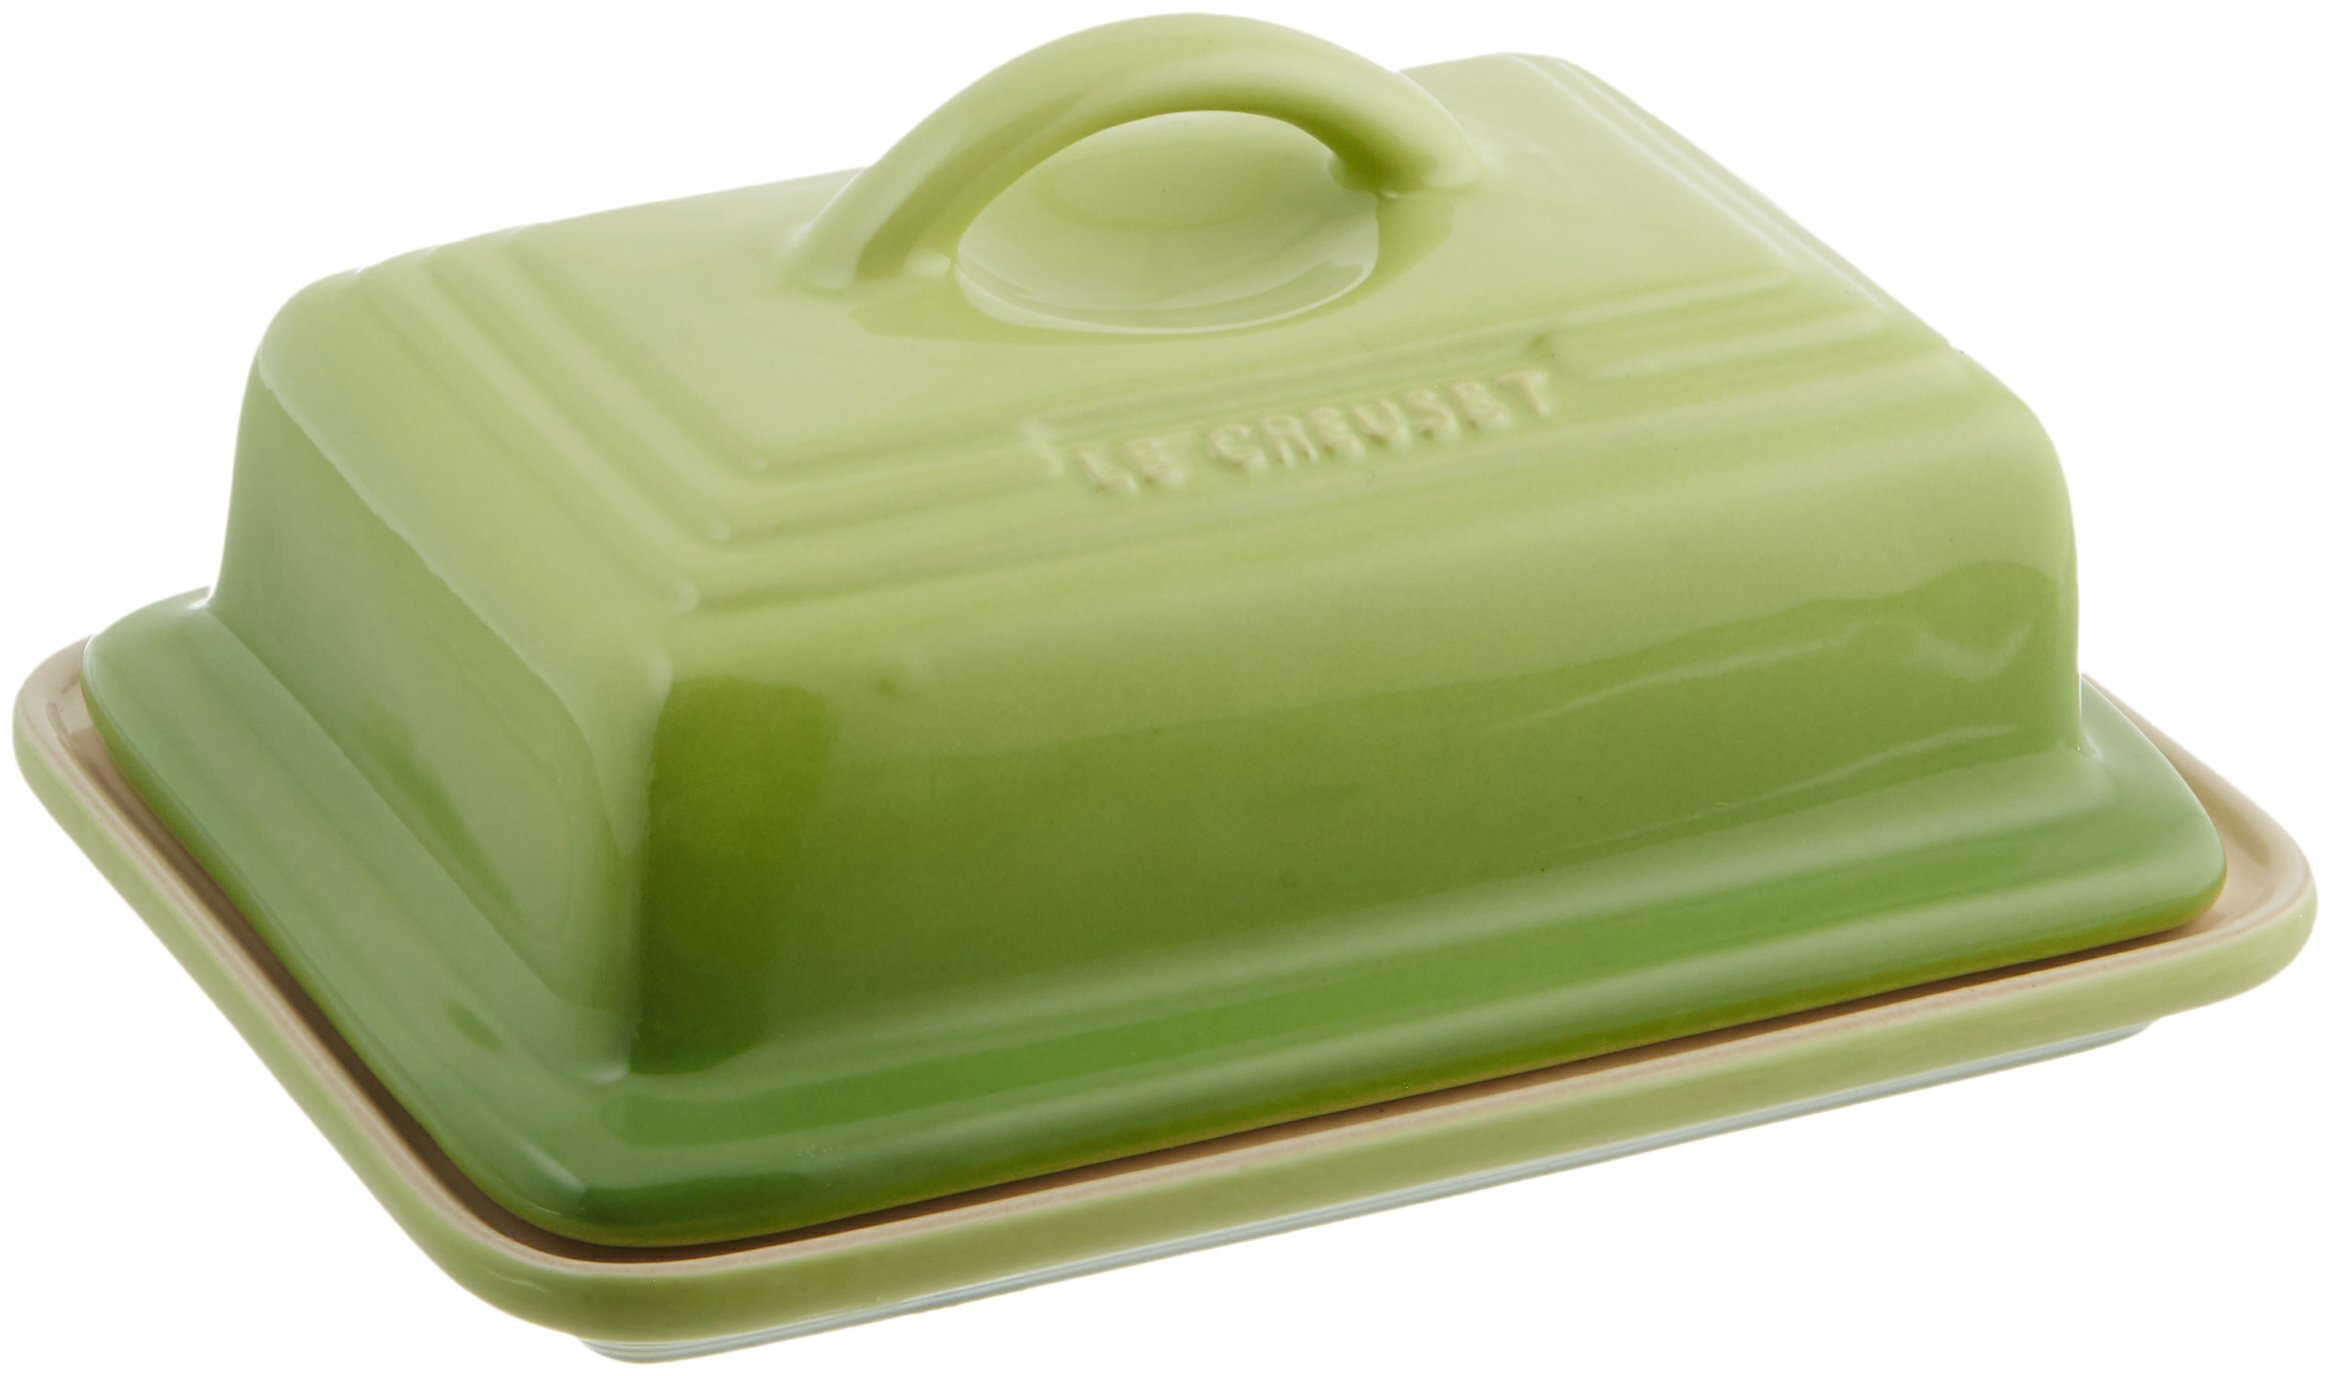 Le Creuset Heritage Stoneware Butter Dish, Palm by Le Creuset (Image #1)